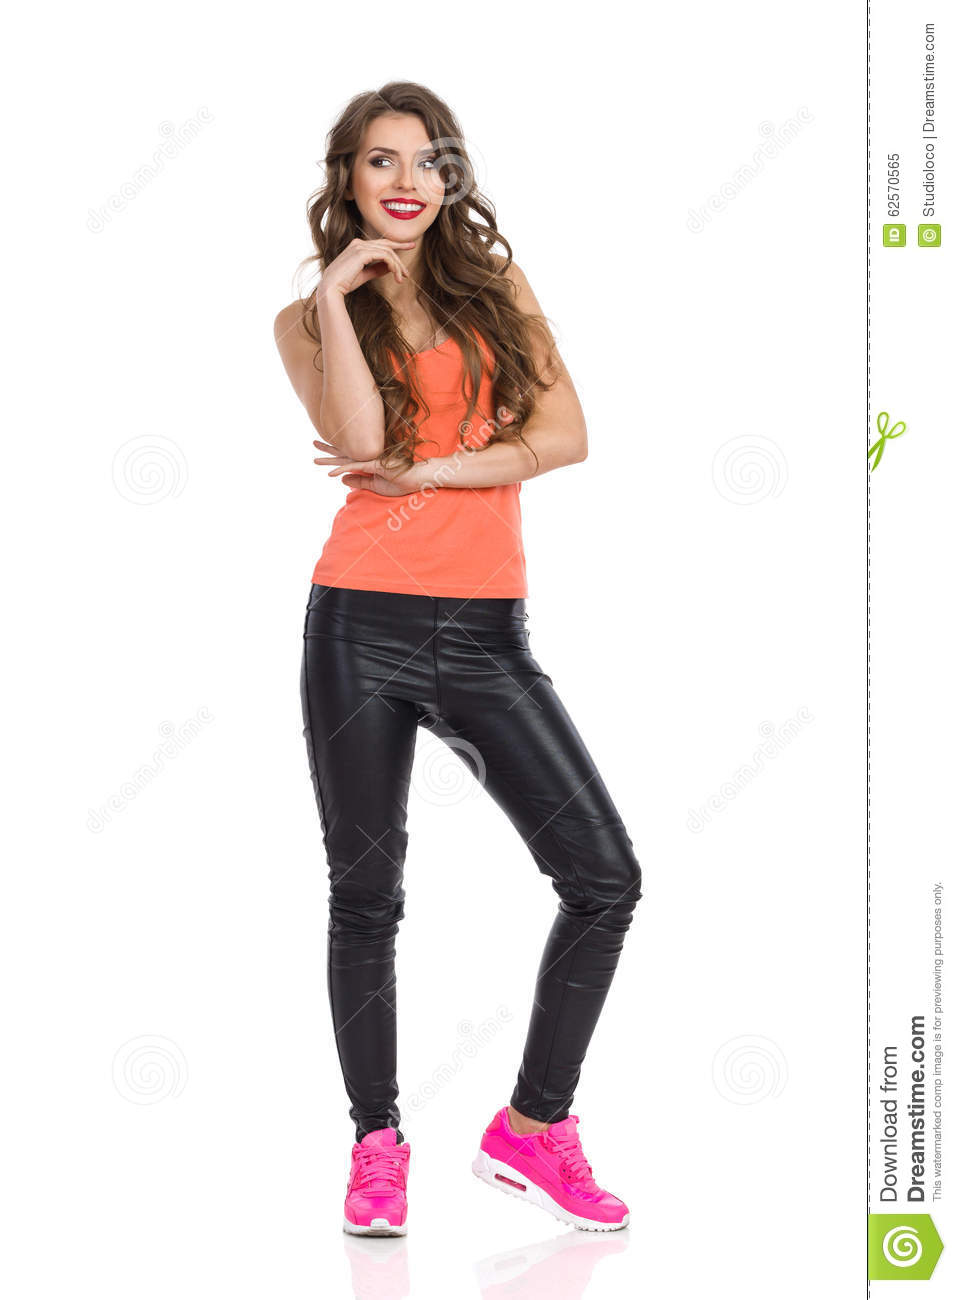 c8f68a300 Smiling young woman in orange shirt, black leather trousers and pink  sneakers standing, holding hand on chin and looking away.